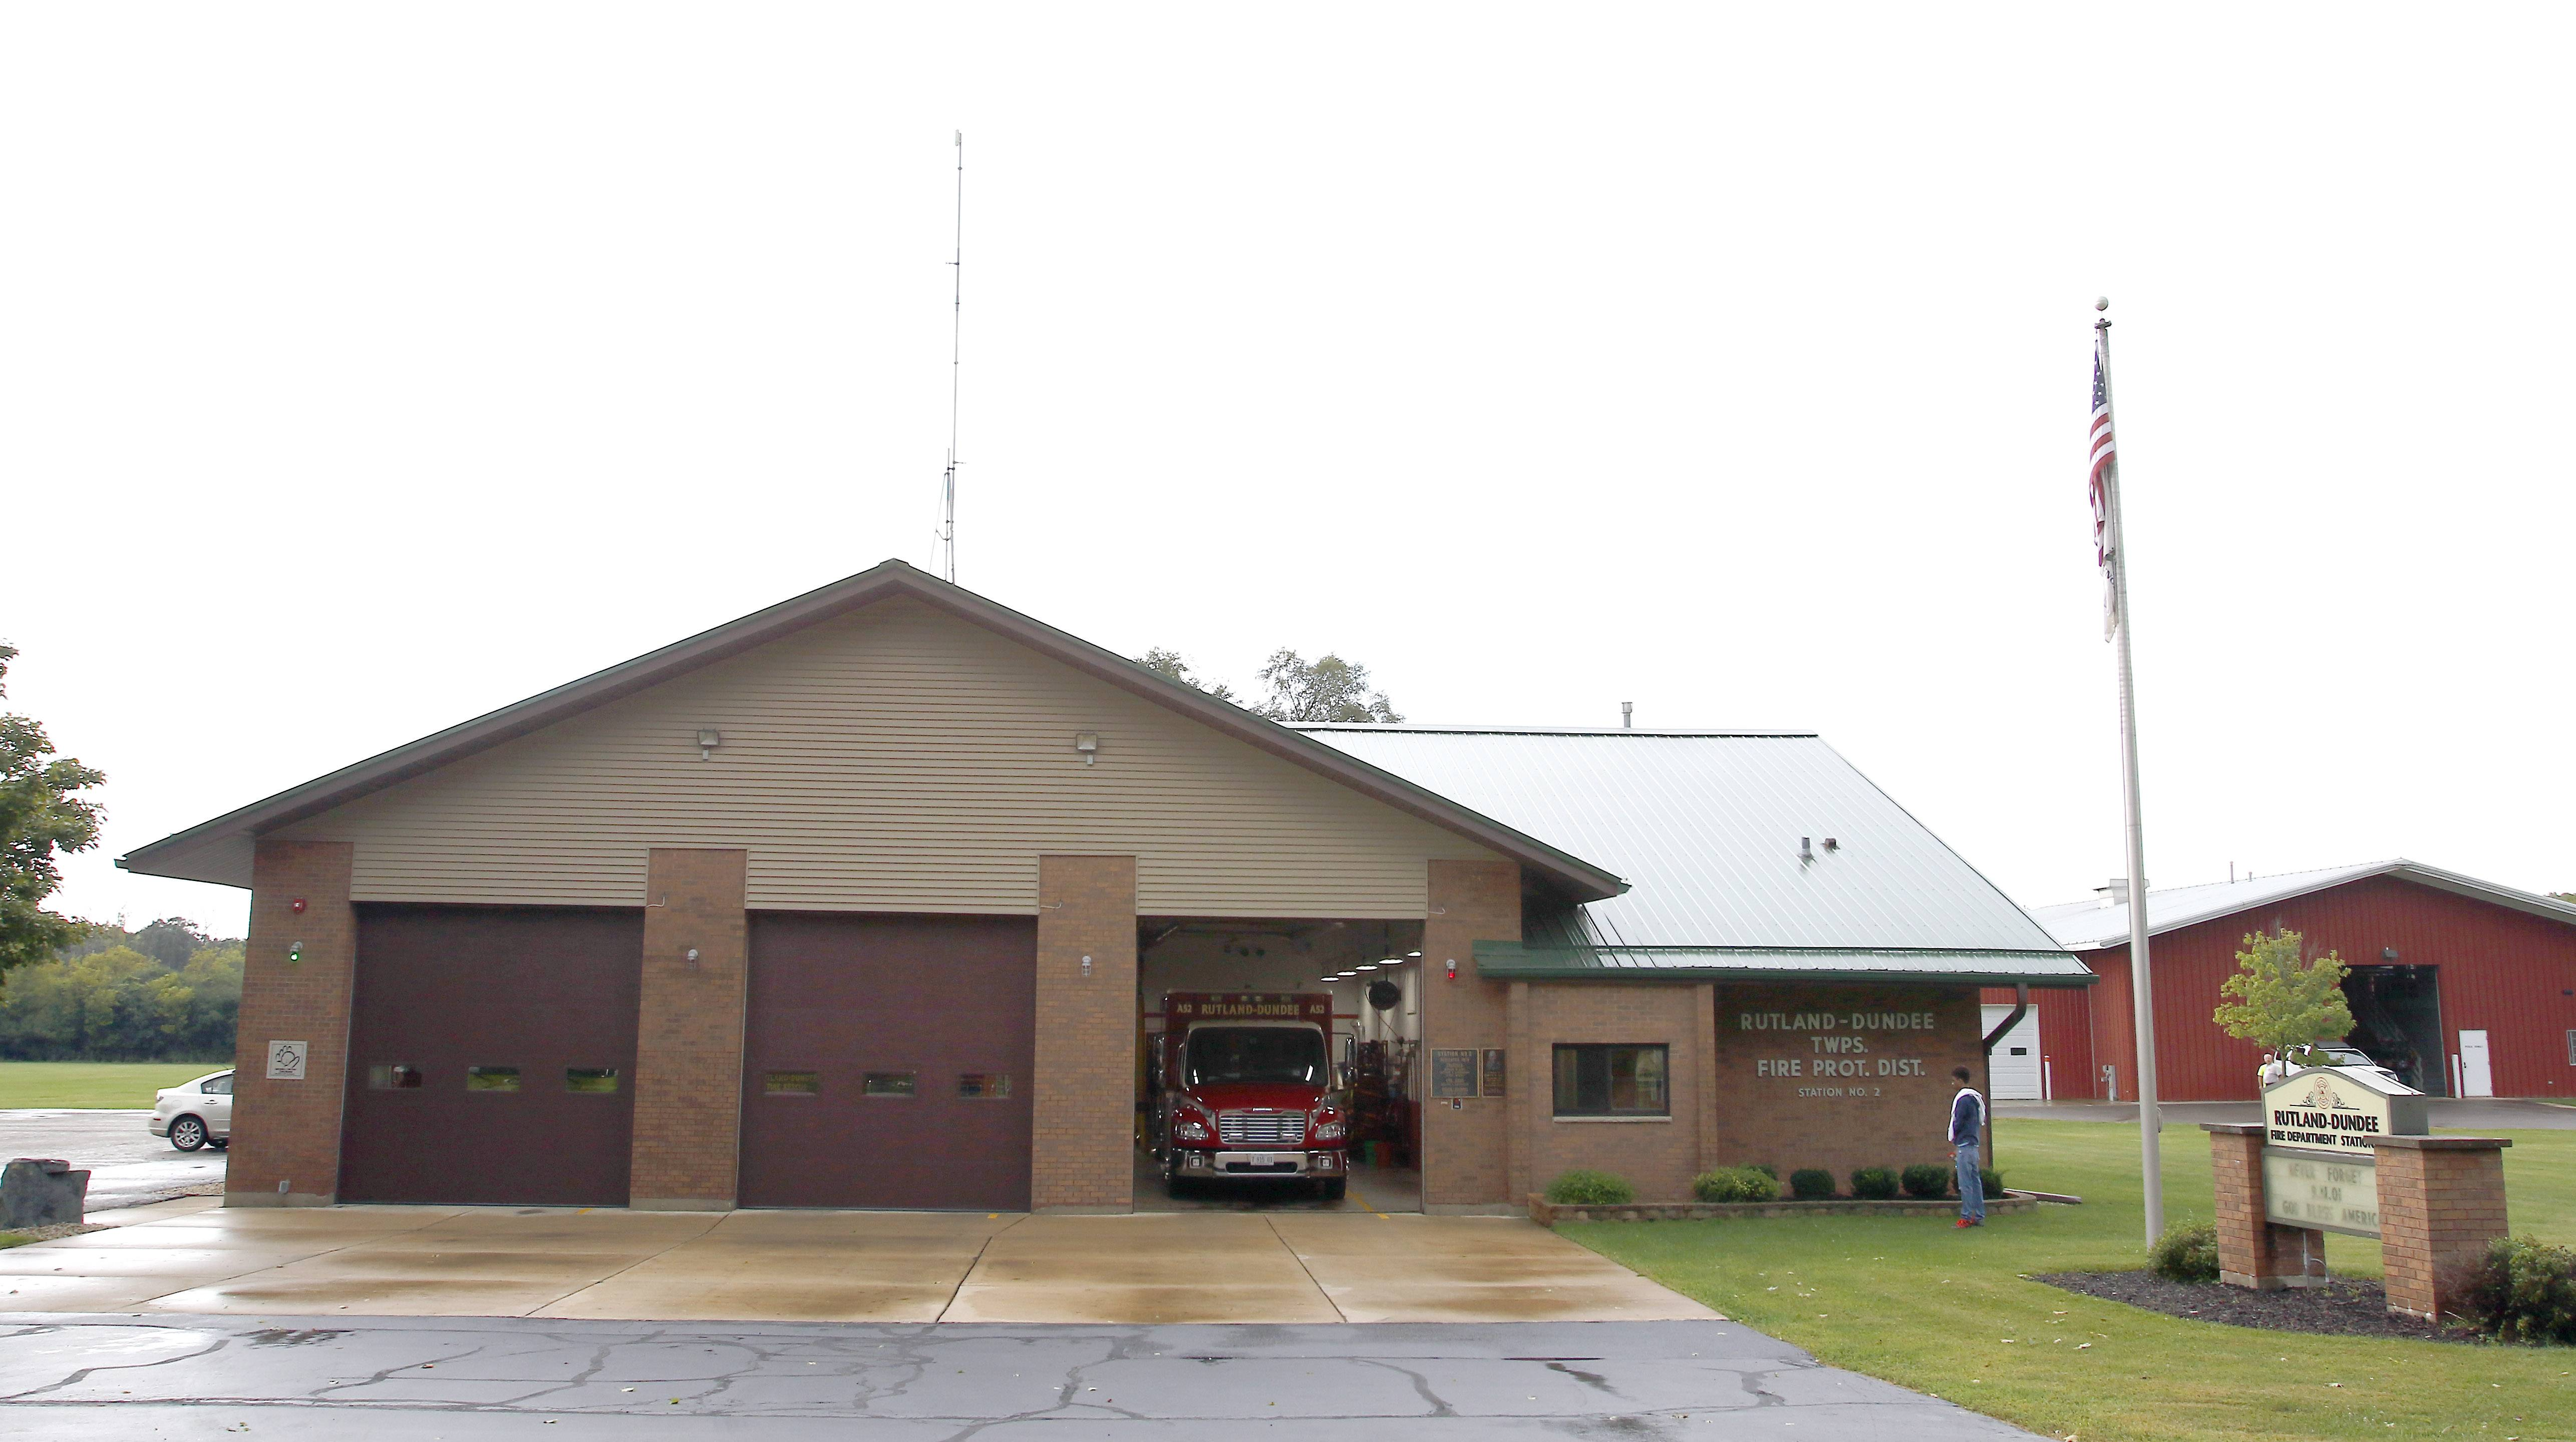 Trustees representing the Rutland-Dundee Fire Protection District, which has stations in Gilberts and Sleepy Hollow, could be elected rather than appointed if voters approve a referendum next week.